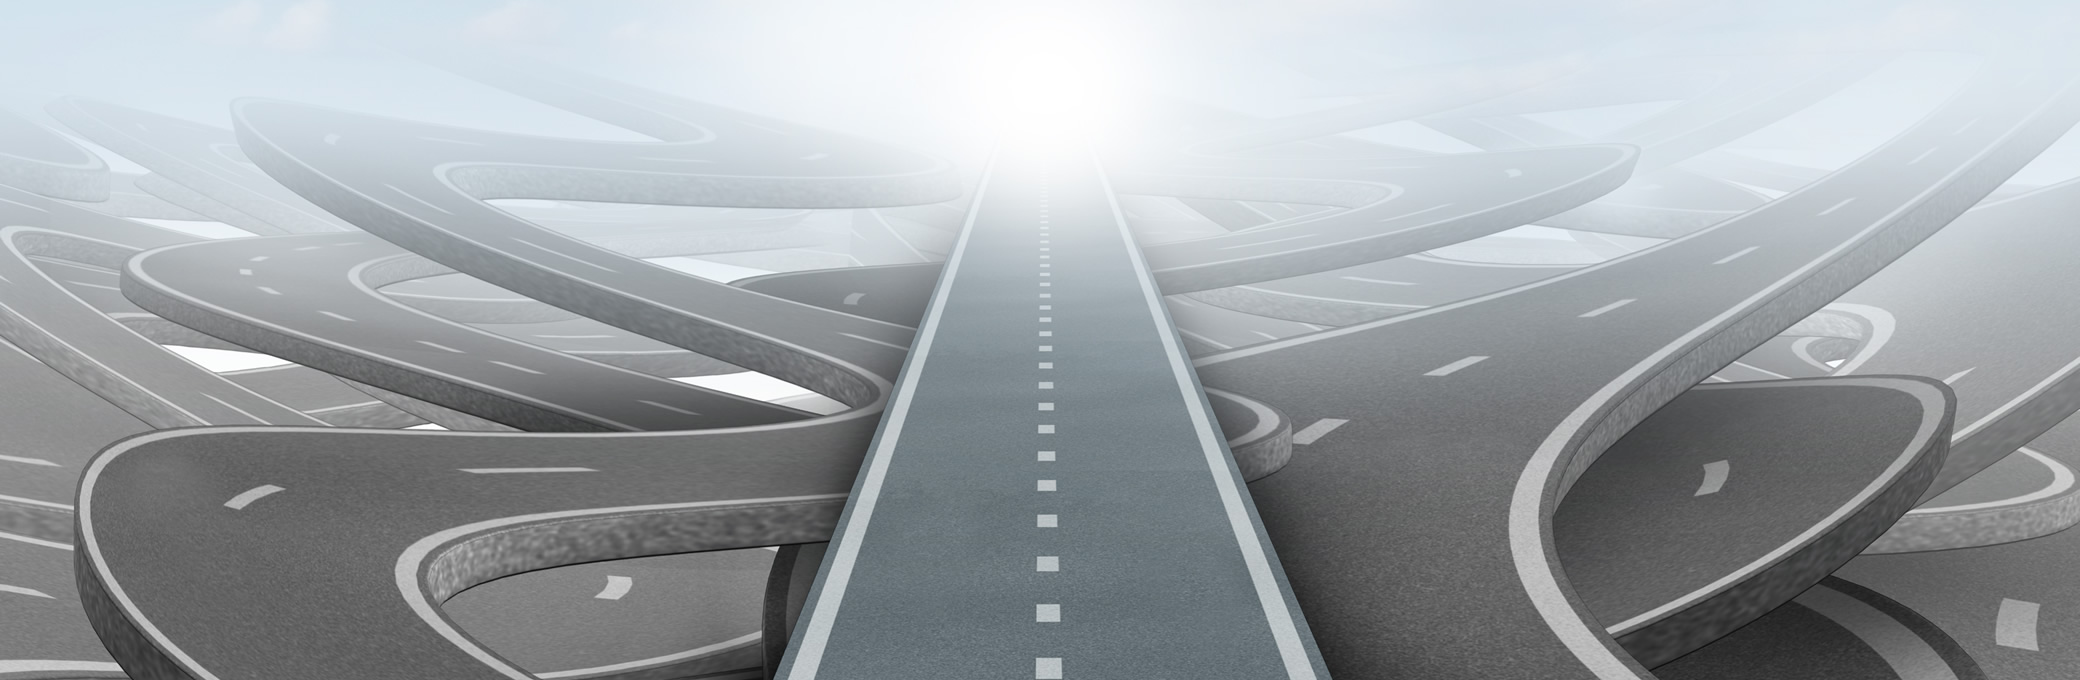 Take Off on ISO 27001 Journey